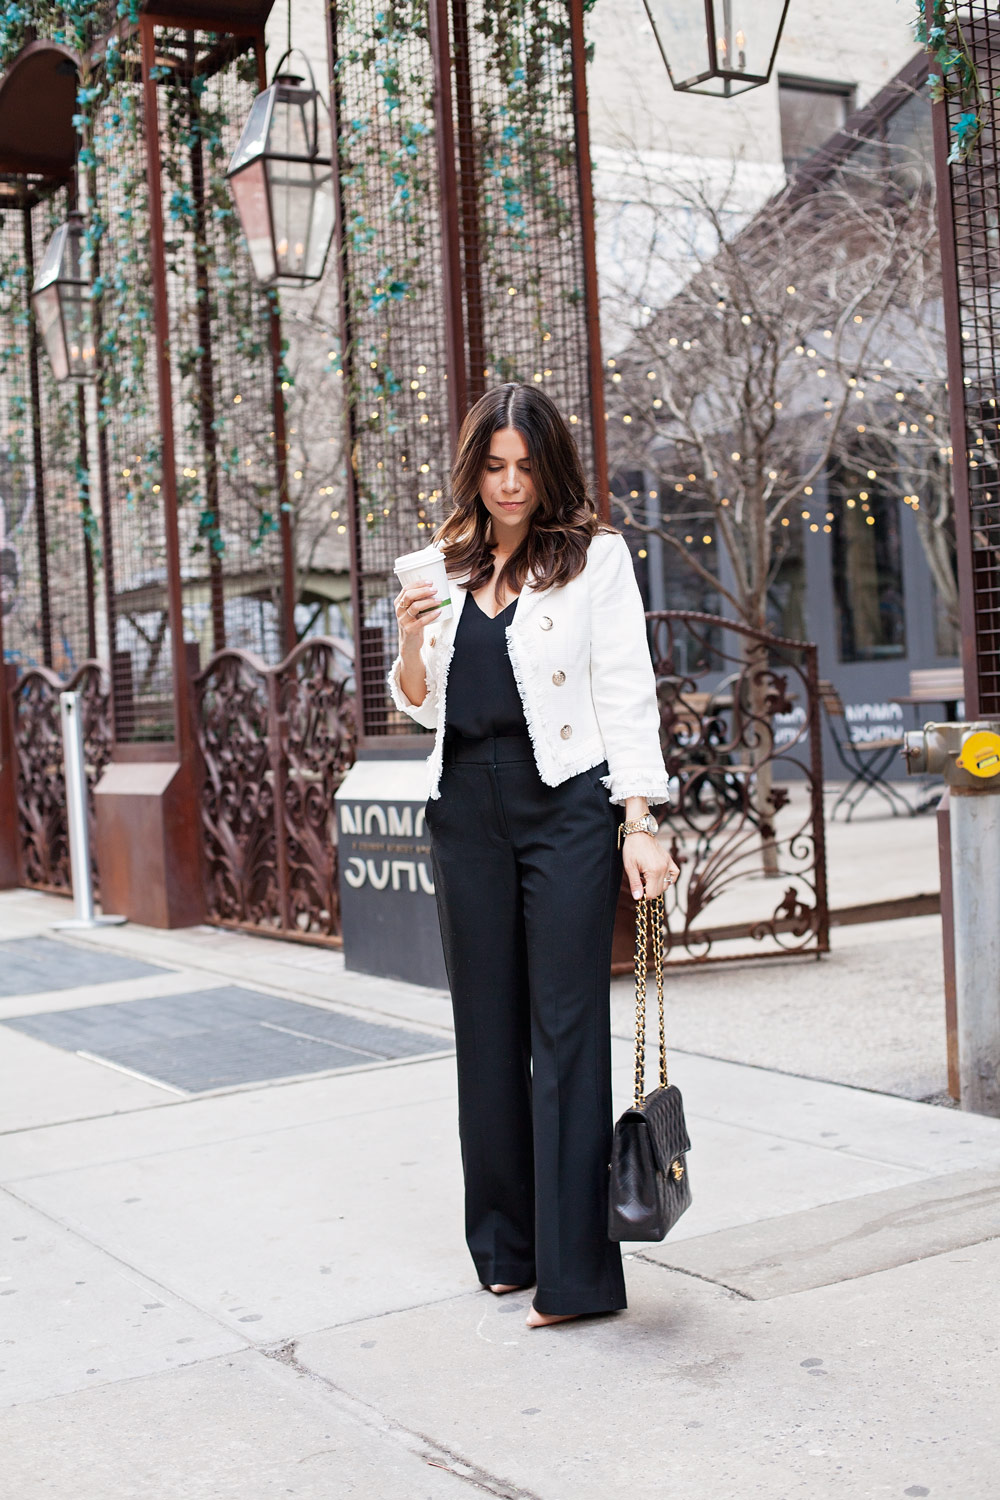 46bd0e5f131 White House Black Market WHBM Workwear Black and White Outfit Post What to  Wear to Work